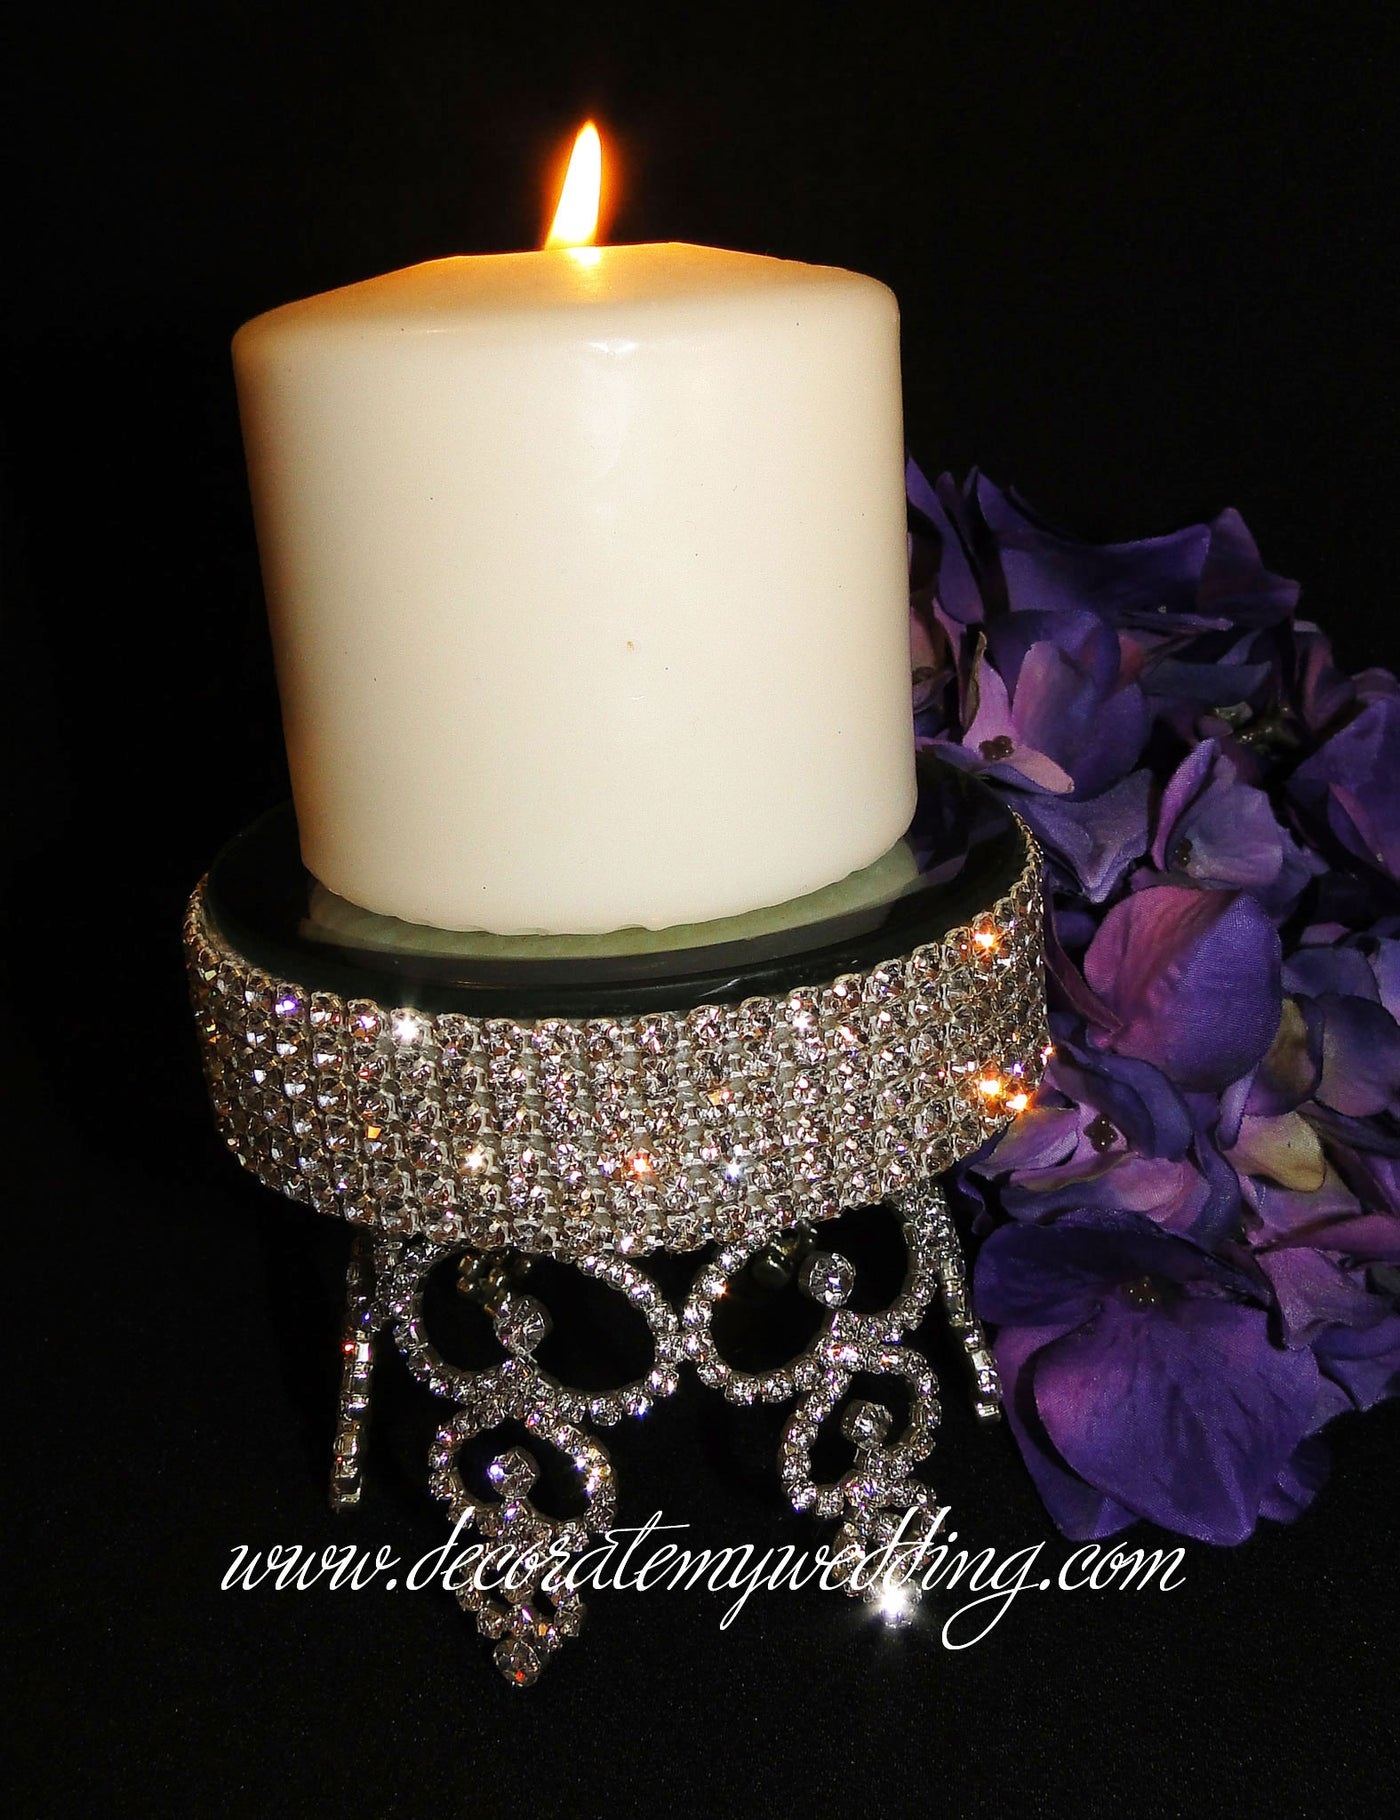 Handmade Candle Stand Designs : Handmade candle holder exclusive design sold decorate my wedding